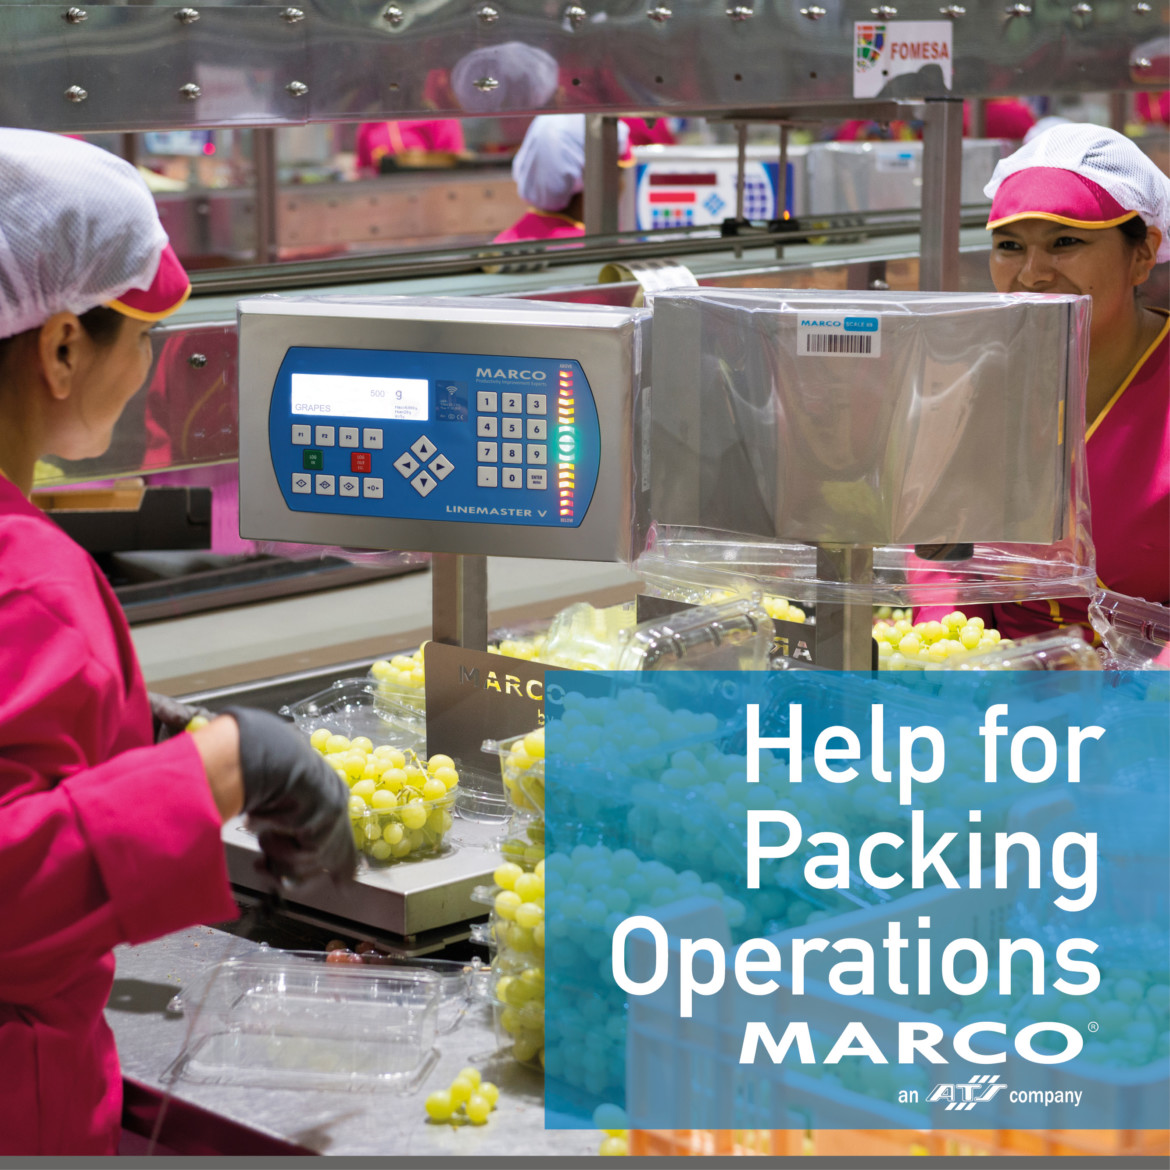 Help for Packing Operations during COVID19 harvest